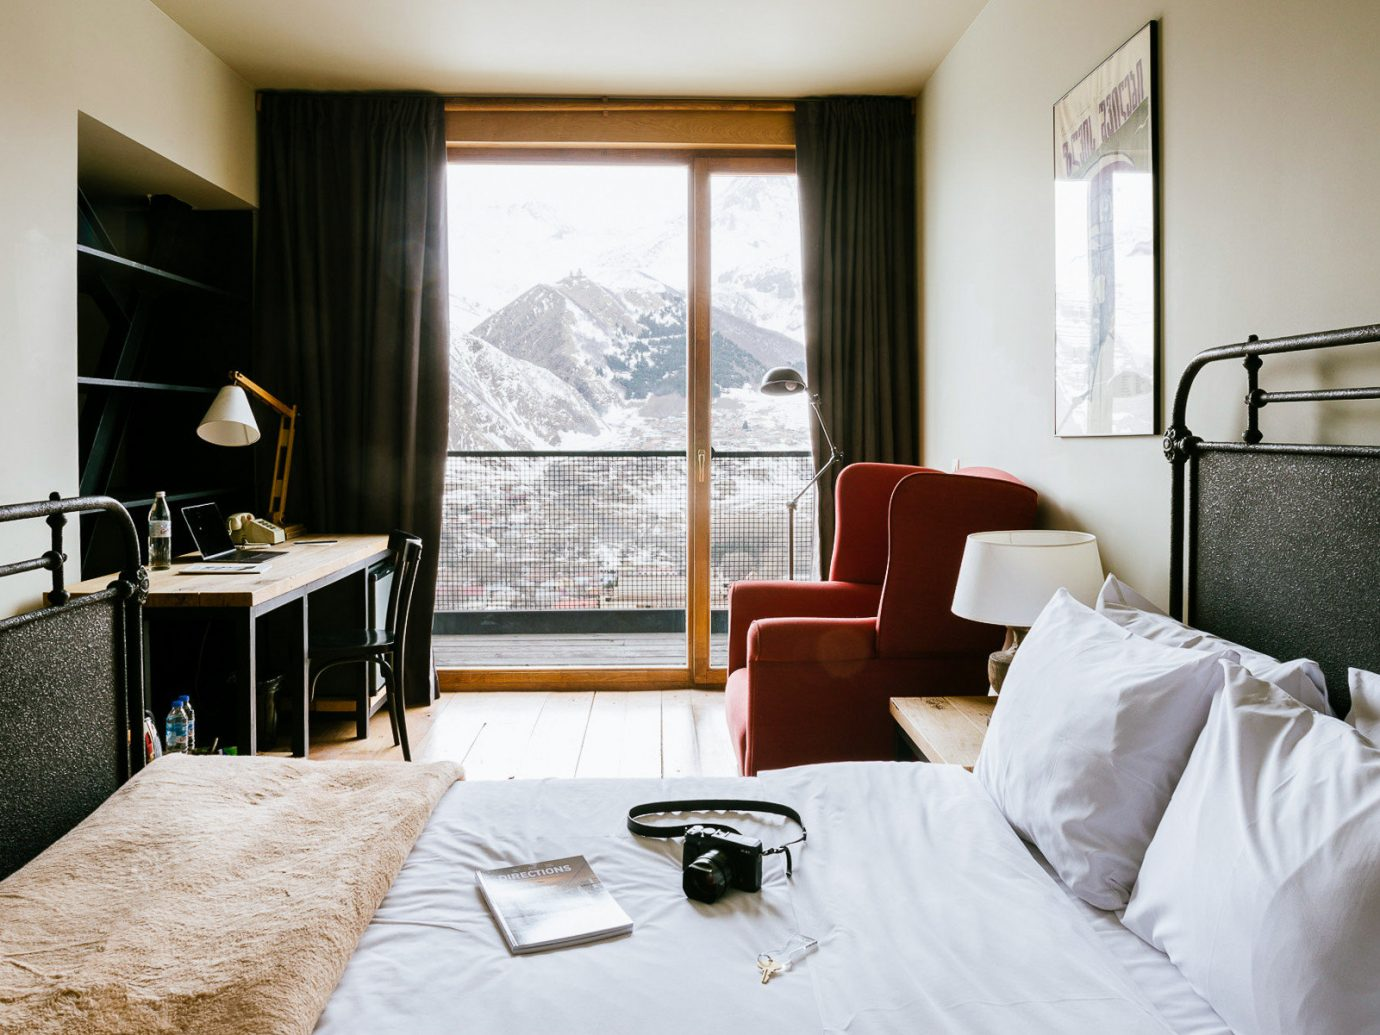 bed indoor wall hotel room window Bedroom interior design Suite furniture apartment several ski georgia country